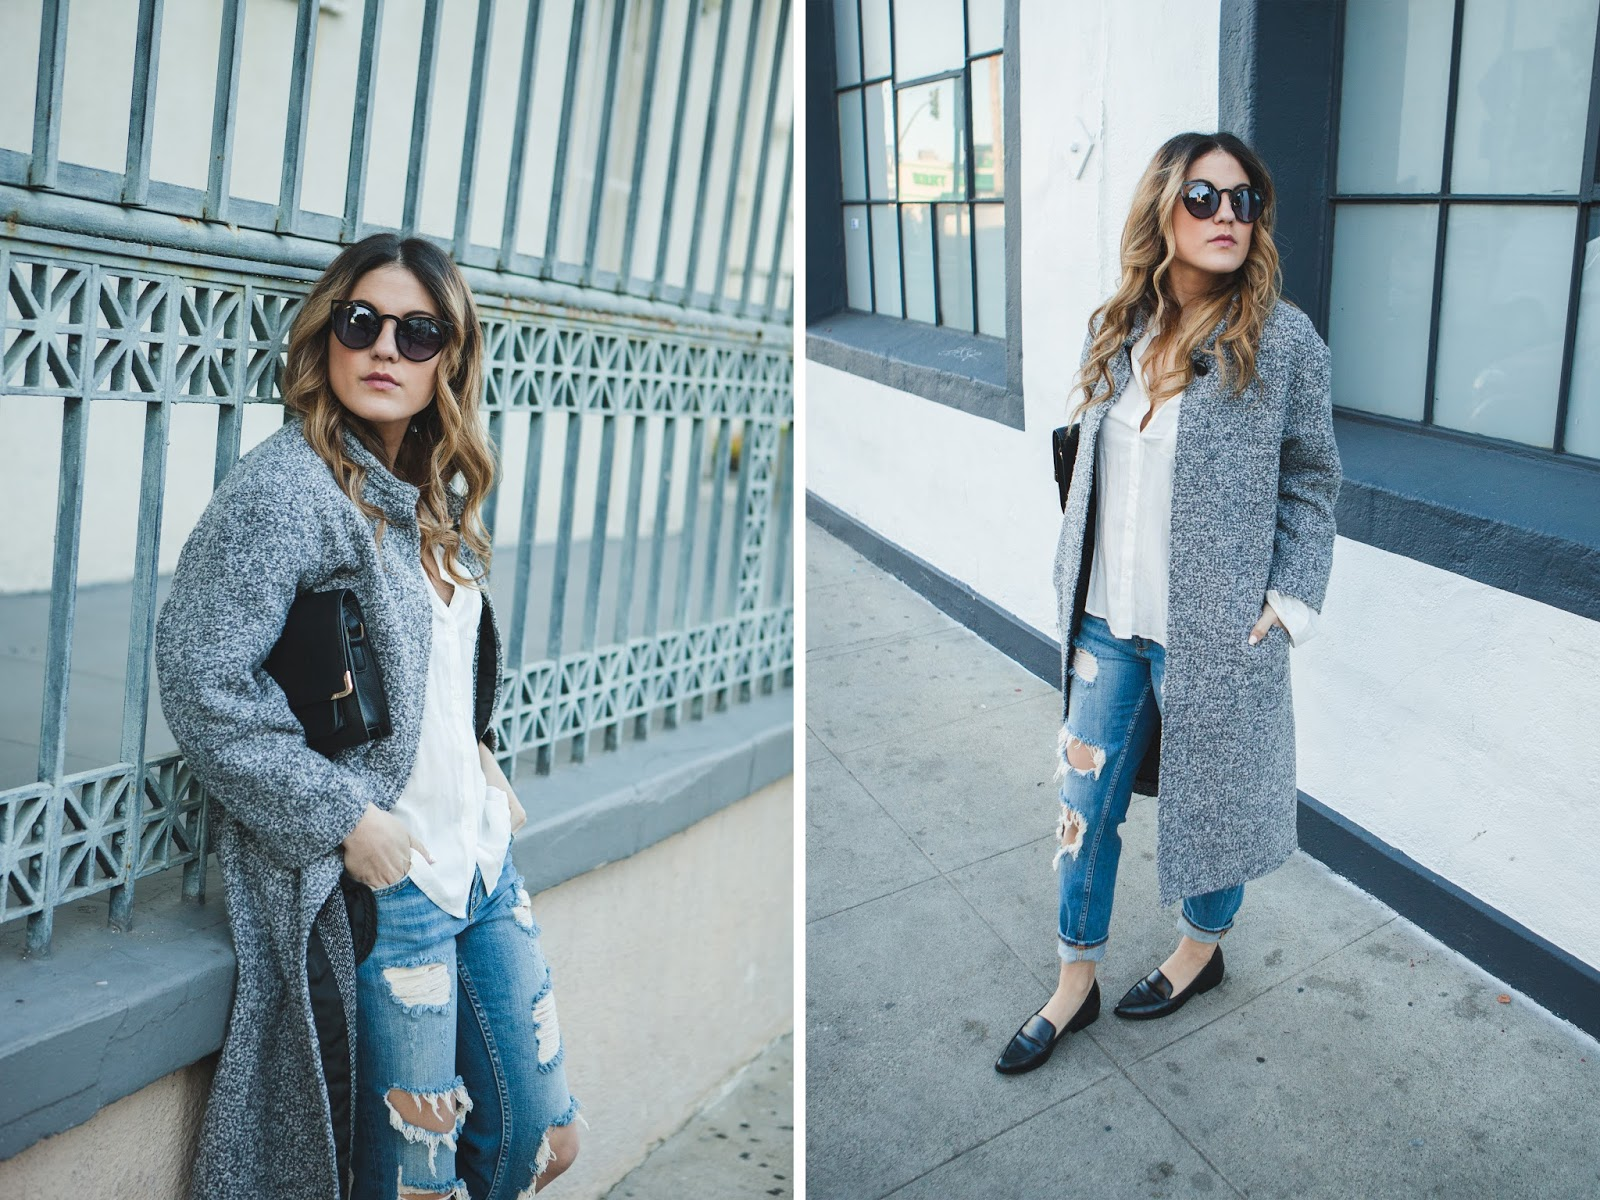 LA Fashion Blogger - Taylor Winkelmeyer - My Cup of Chic